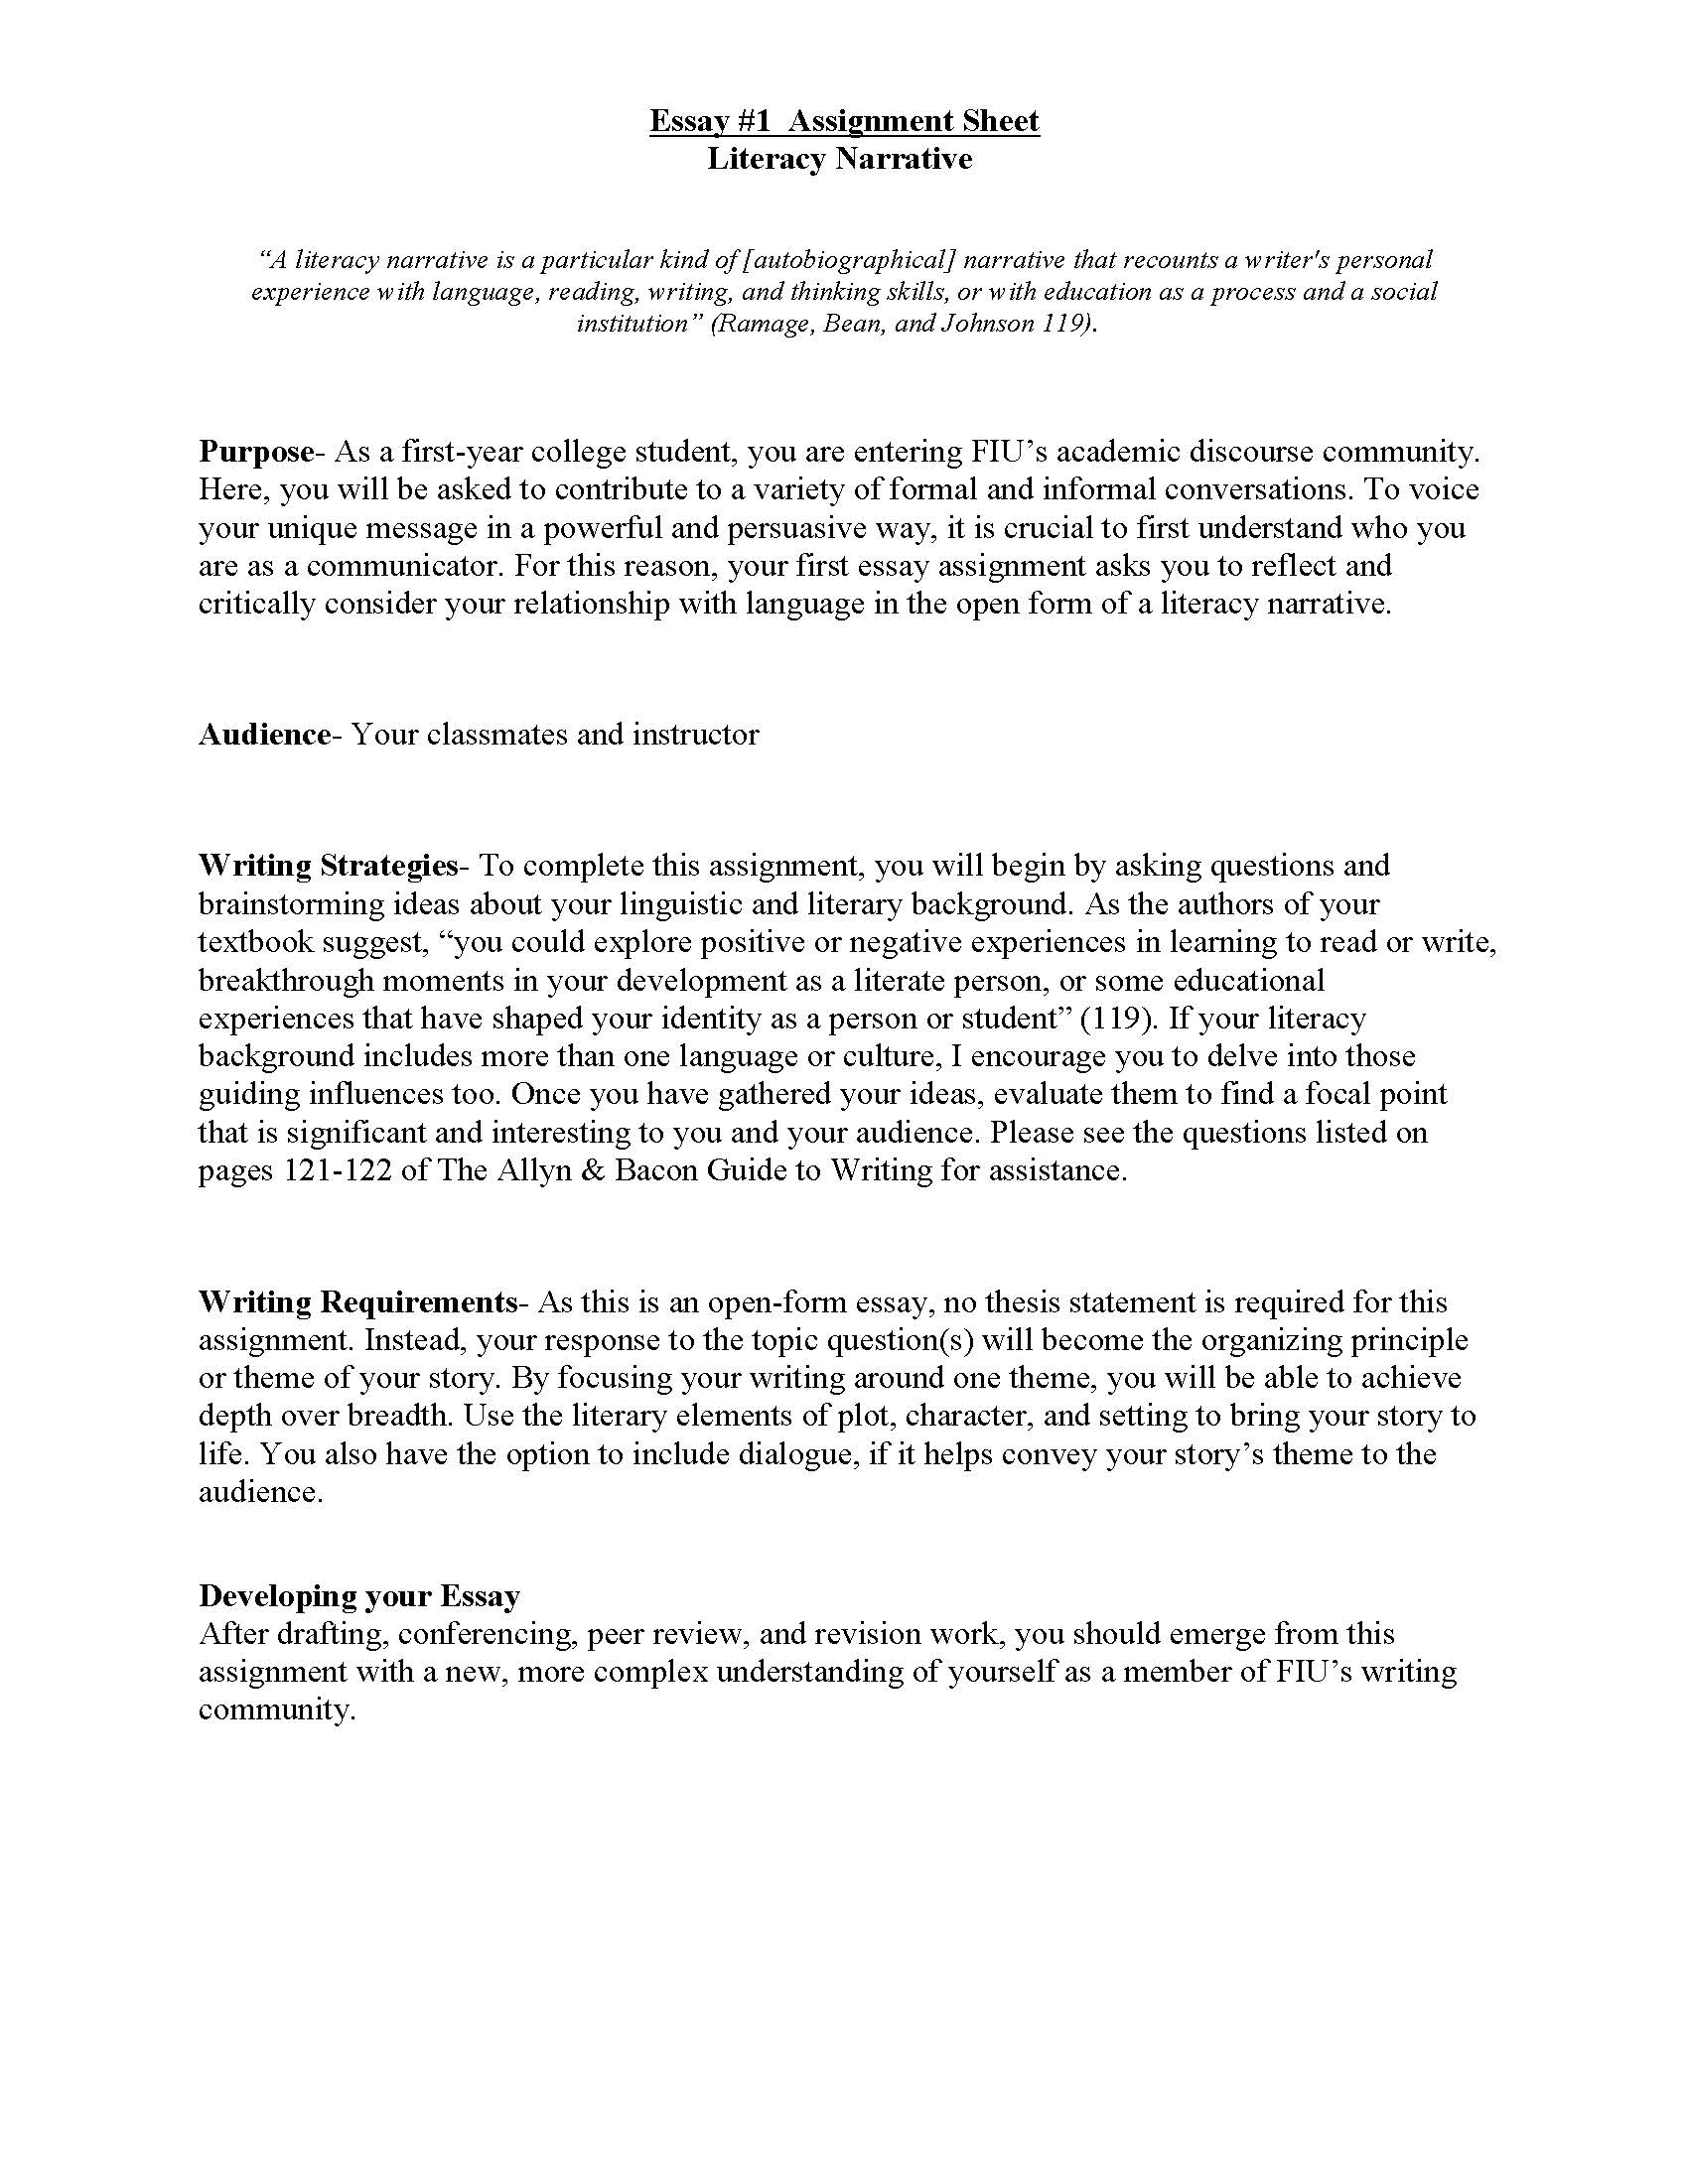 013 Example Of Narrative Essay Literacy Unit Assignment Spring 2012 Page 1 Magnificent About Yourself Introduction Friendship Full